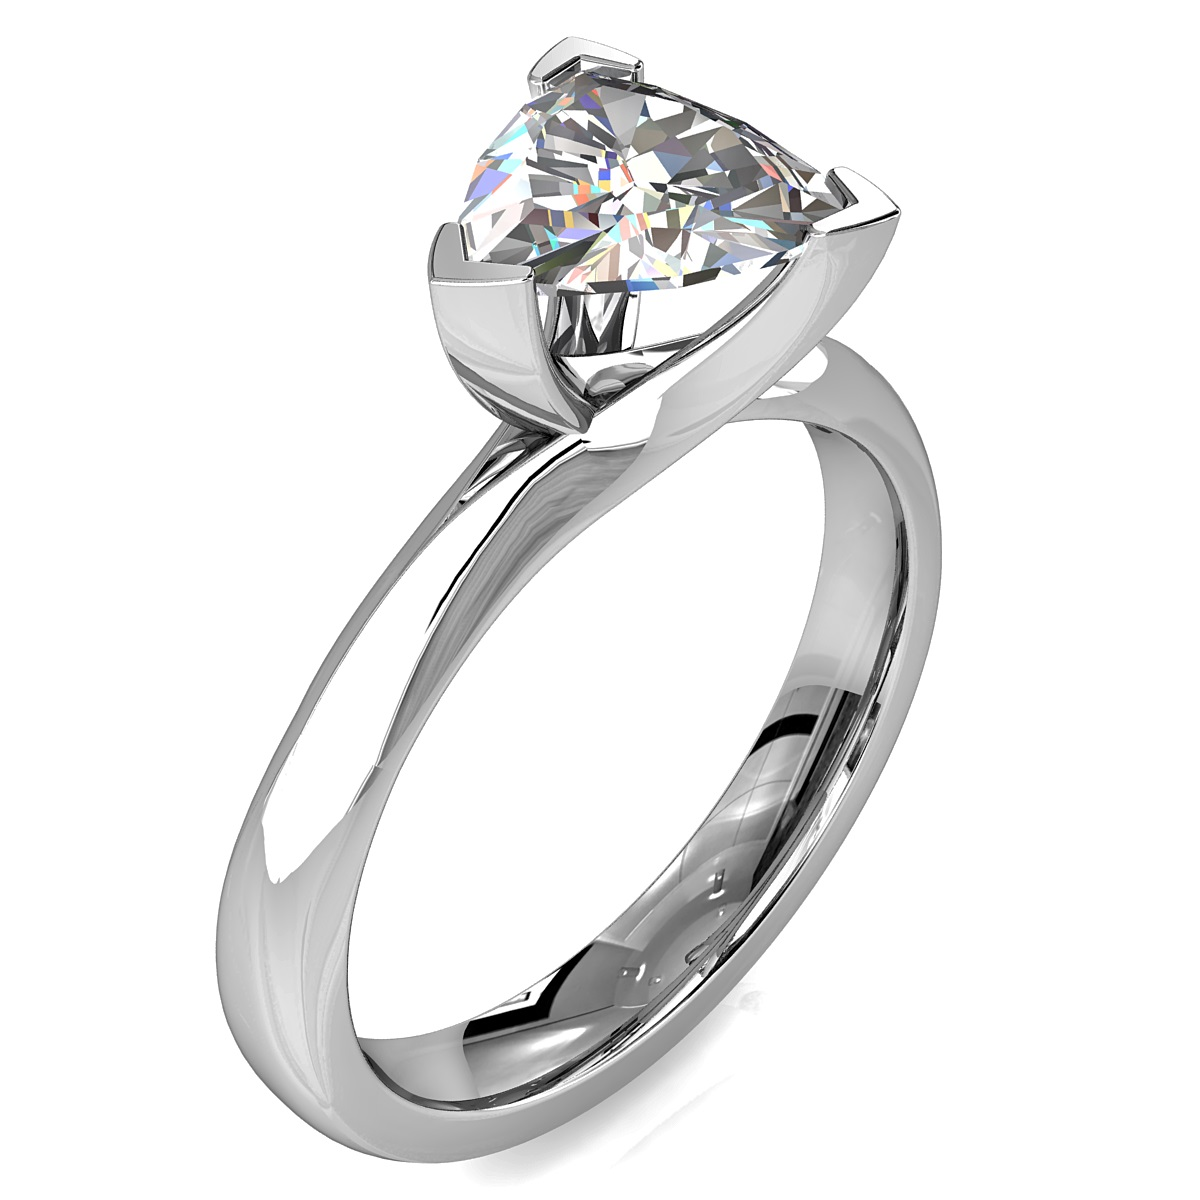 Trilliant Cut Solitaire Diamond Engagement Ring, 3 Corner Claws on a Sweeping Band.